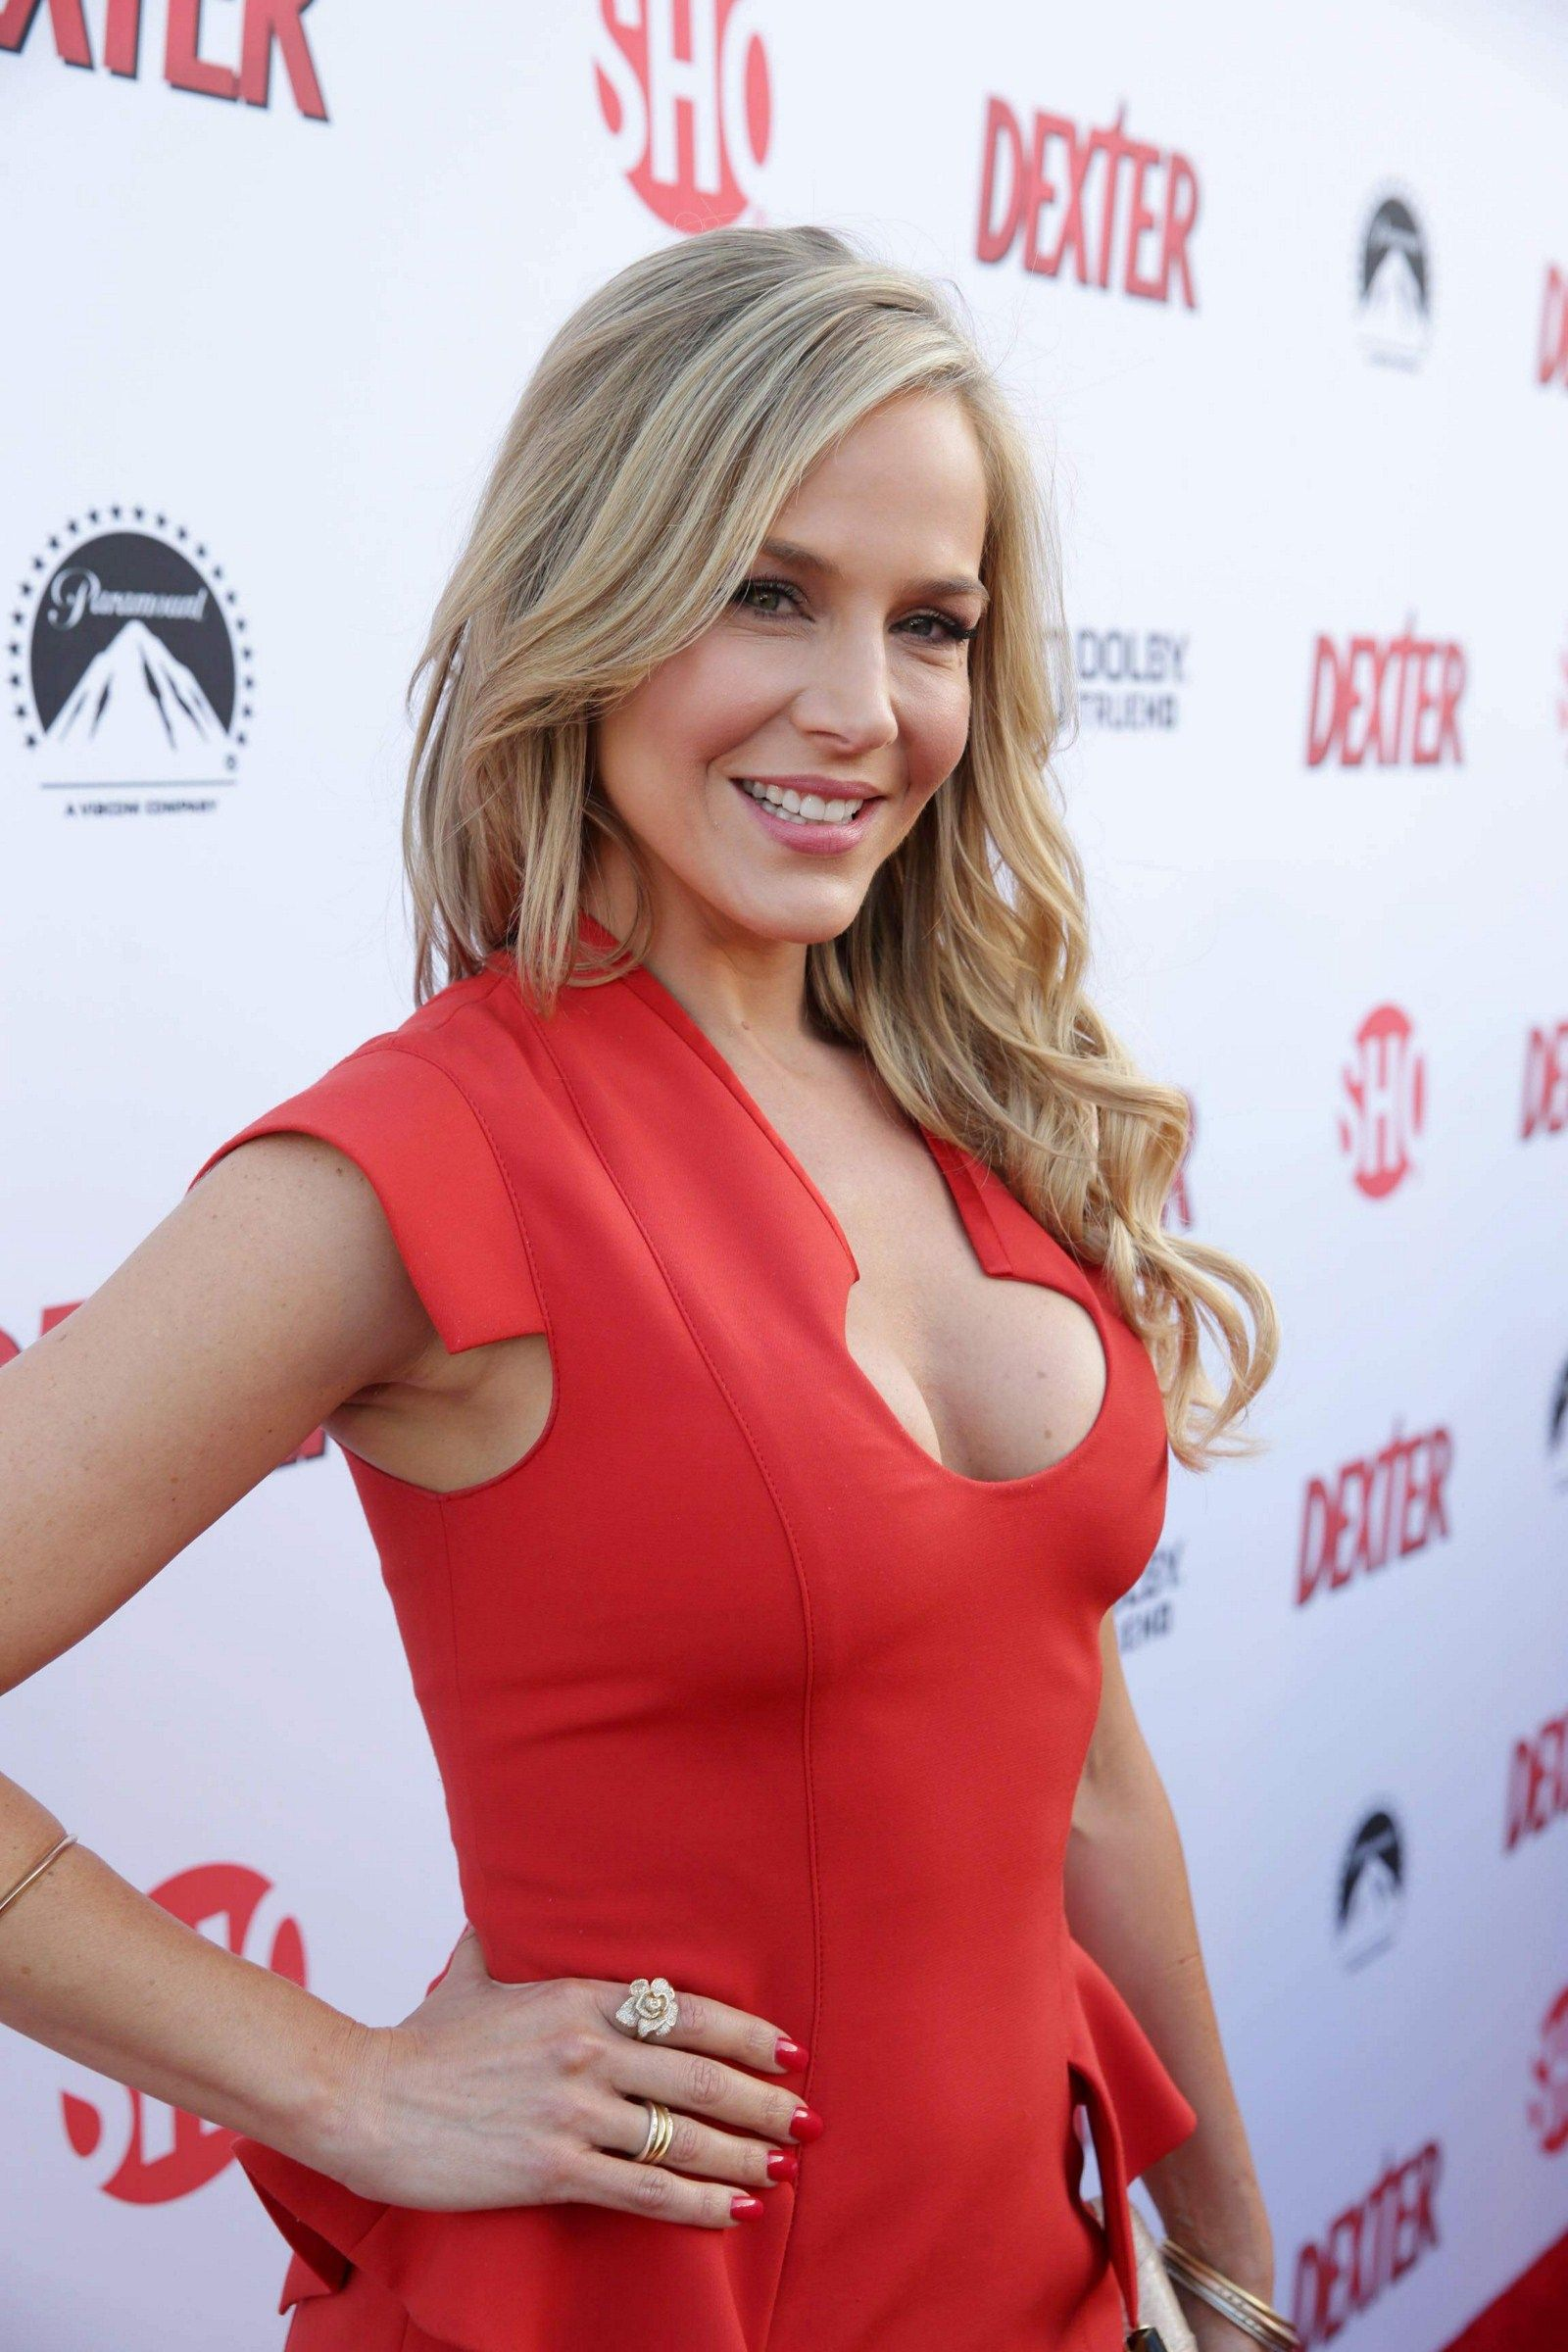 Cleavage Julie Benzs nude photos 2019